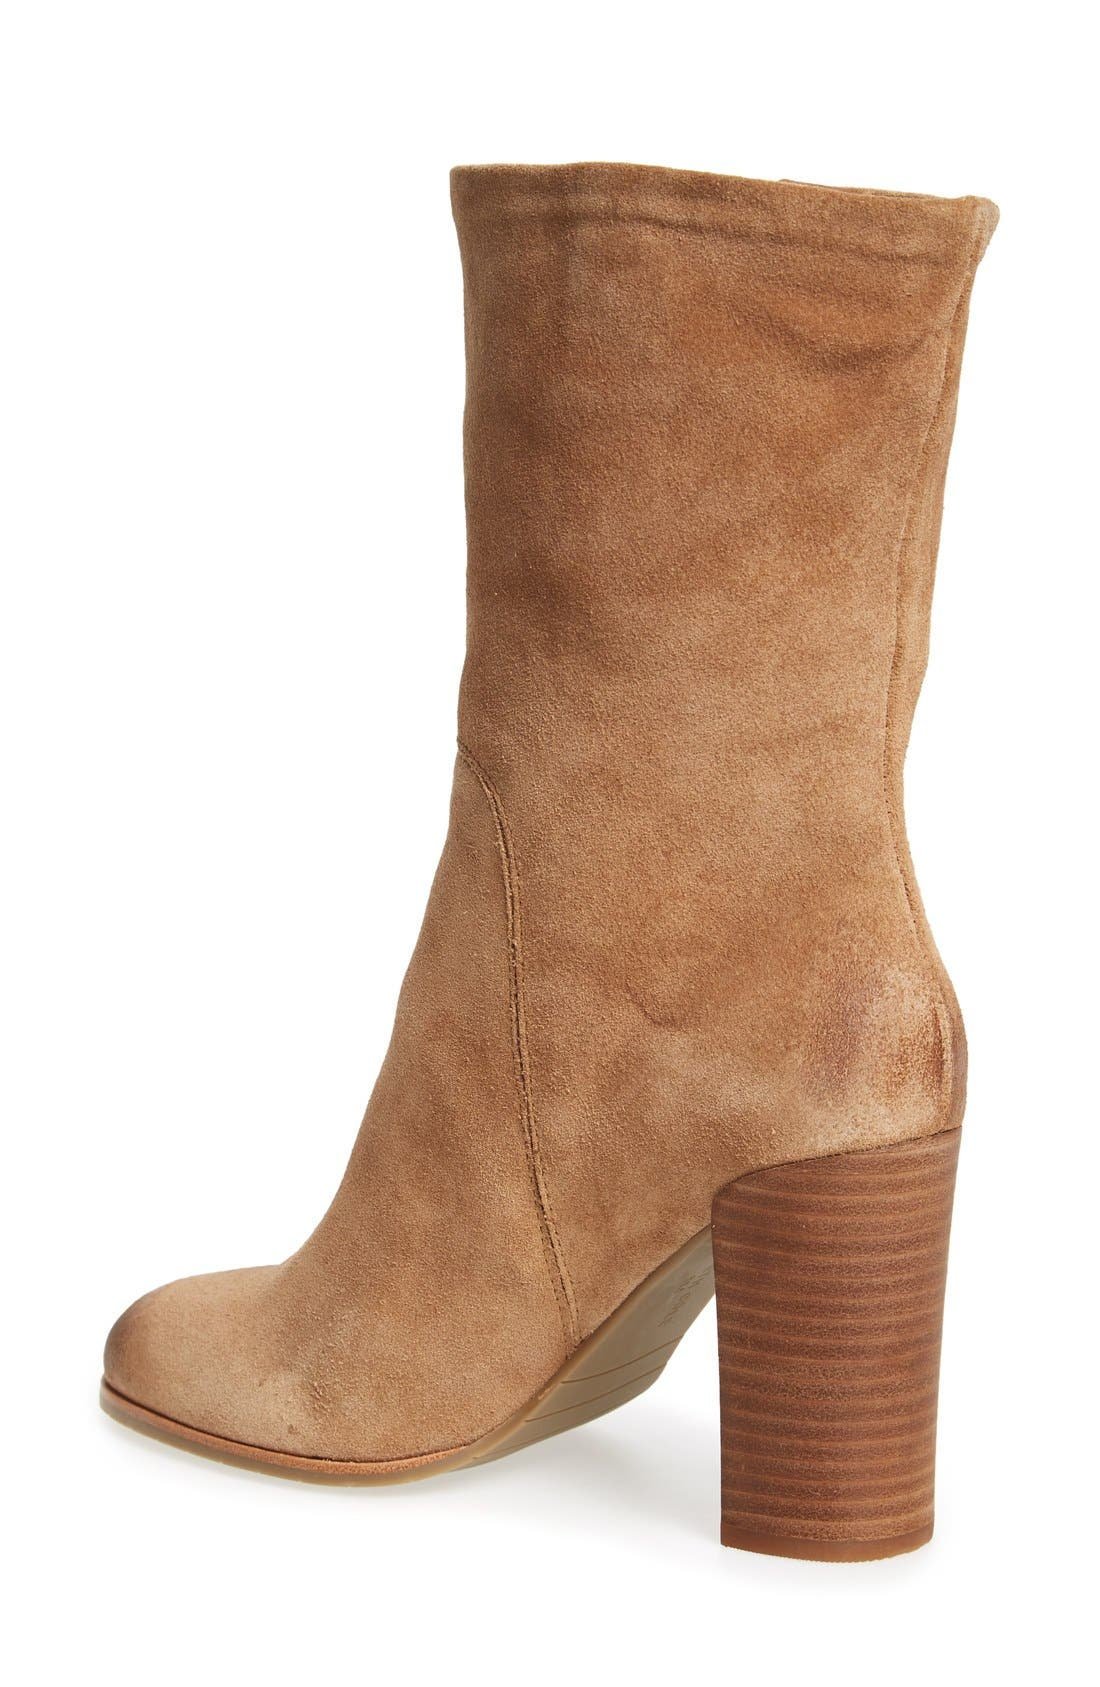 'Jenni' Round Toe Boot,                             Alternate thumbnail 2, color,                             Desert Suede